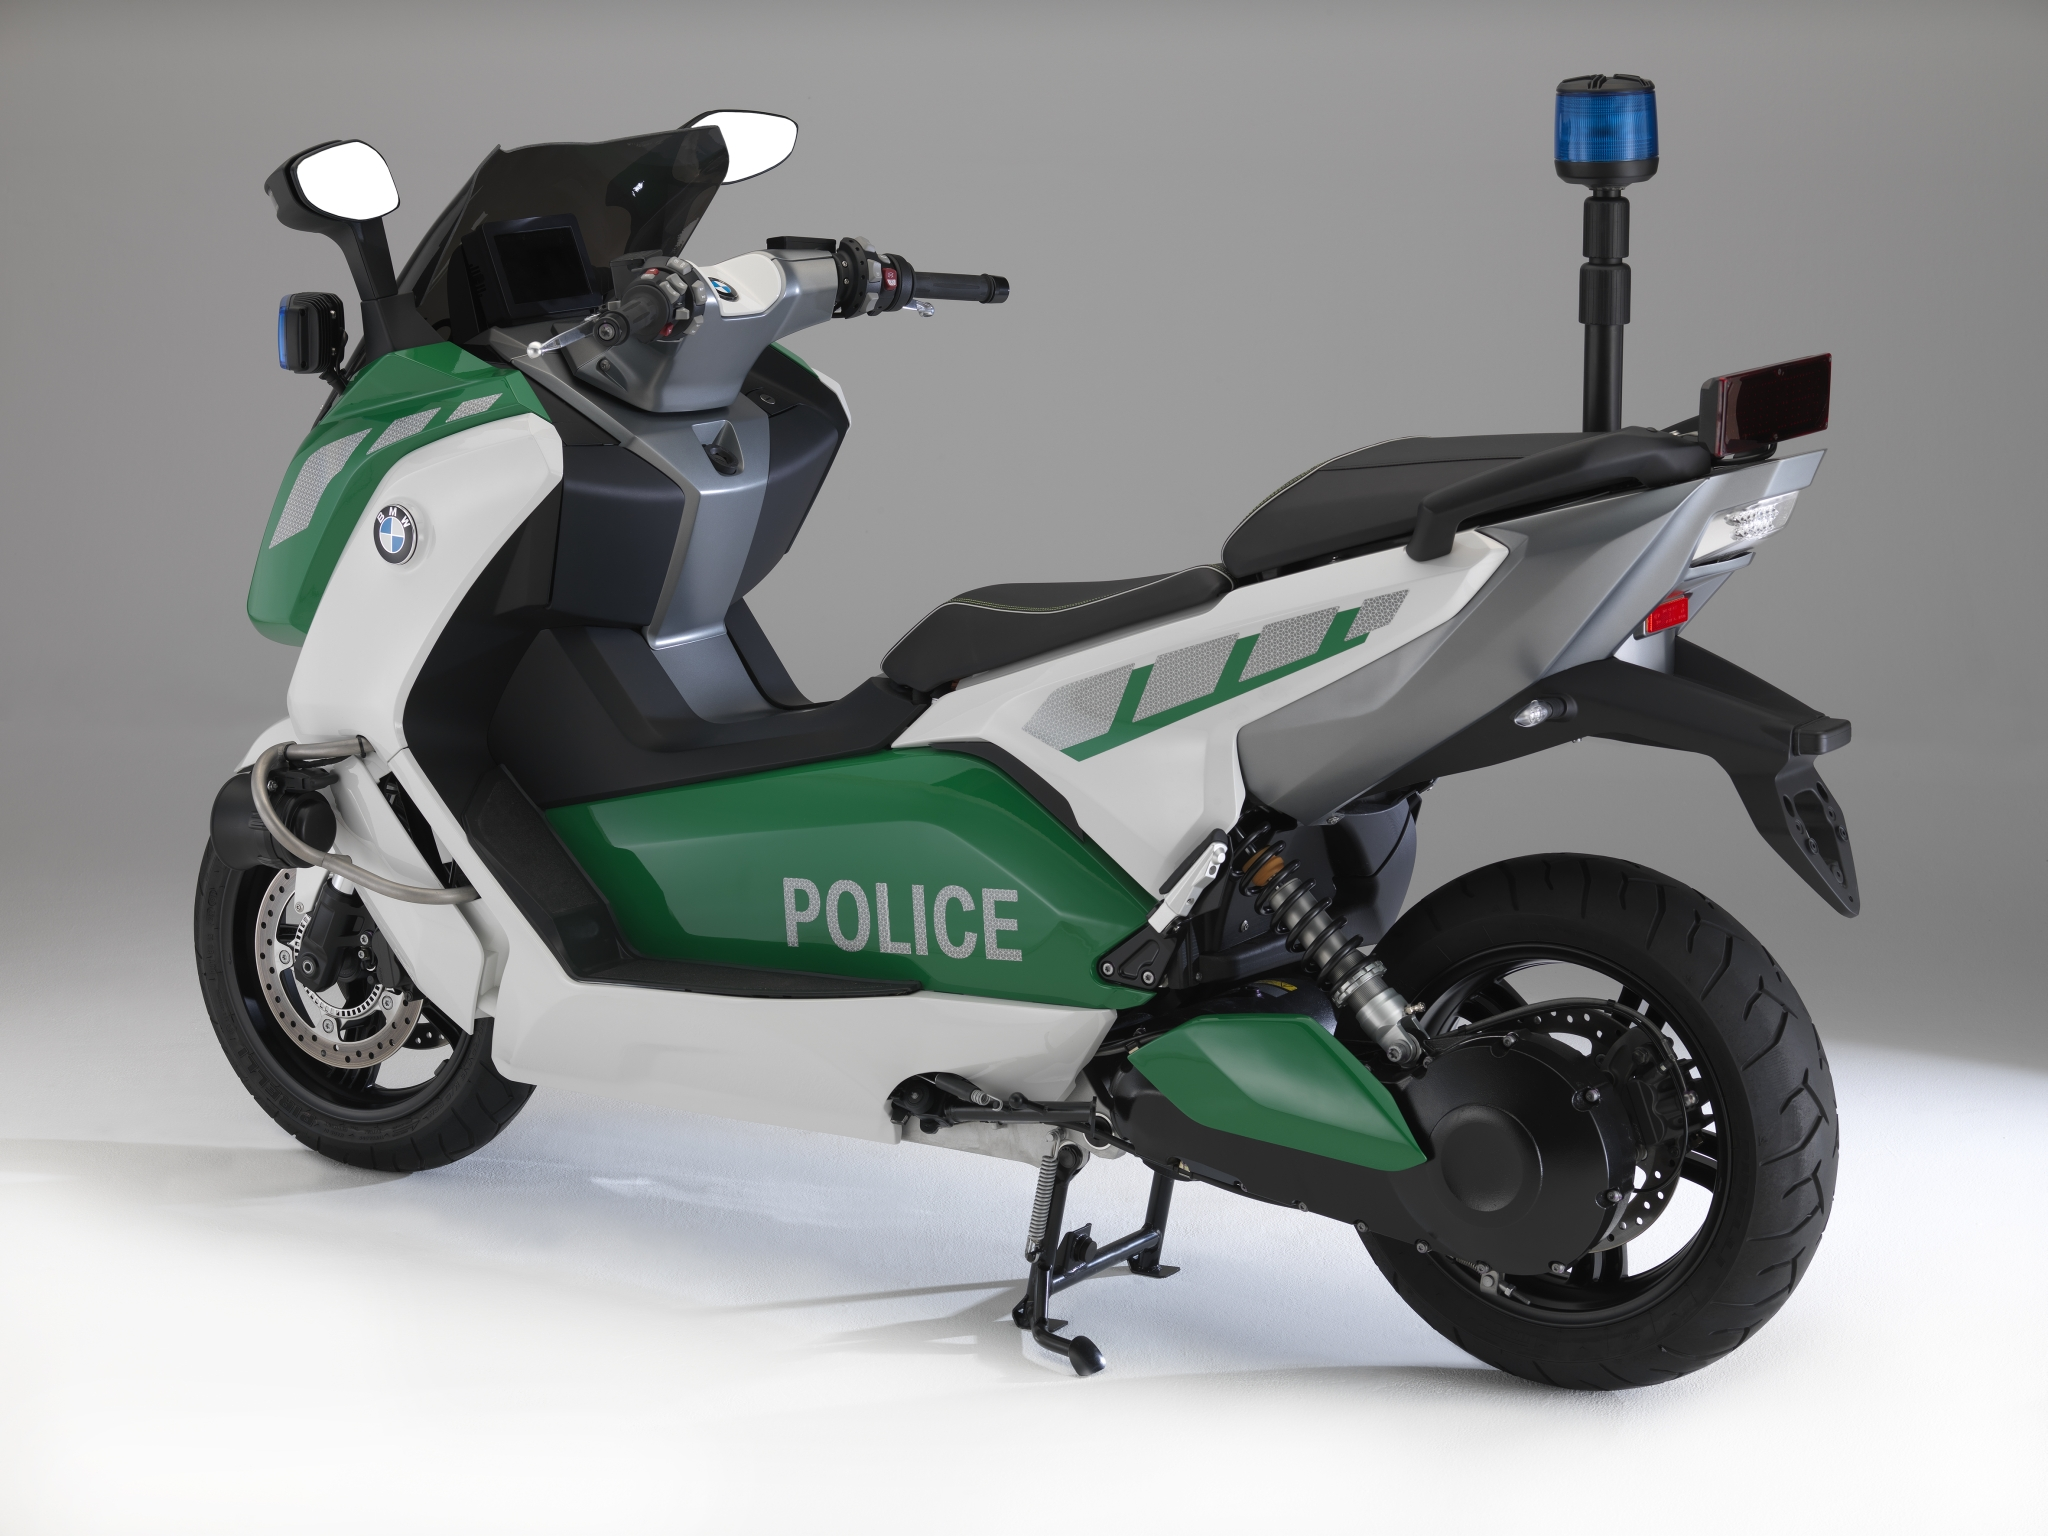 bmw shows police spec c 600 scooter and more at milipol. Black Bedroom Furniture Sets. Home Design Ideas